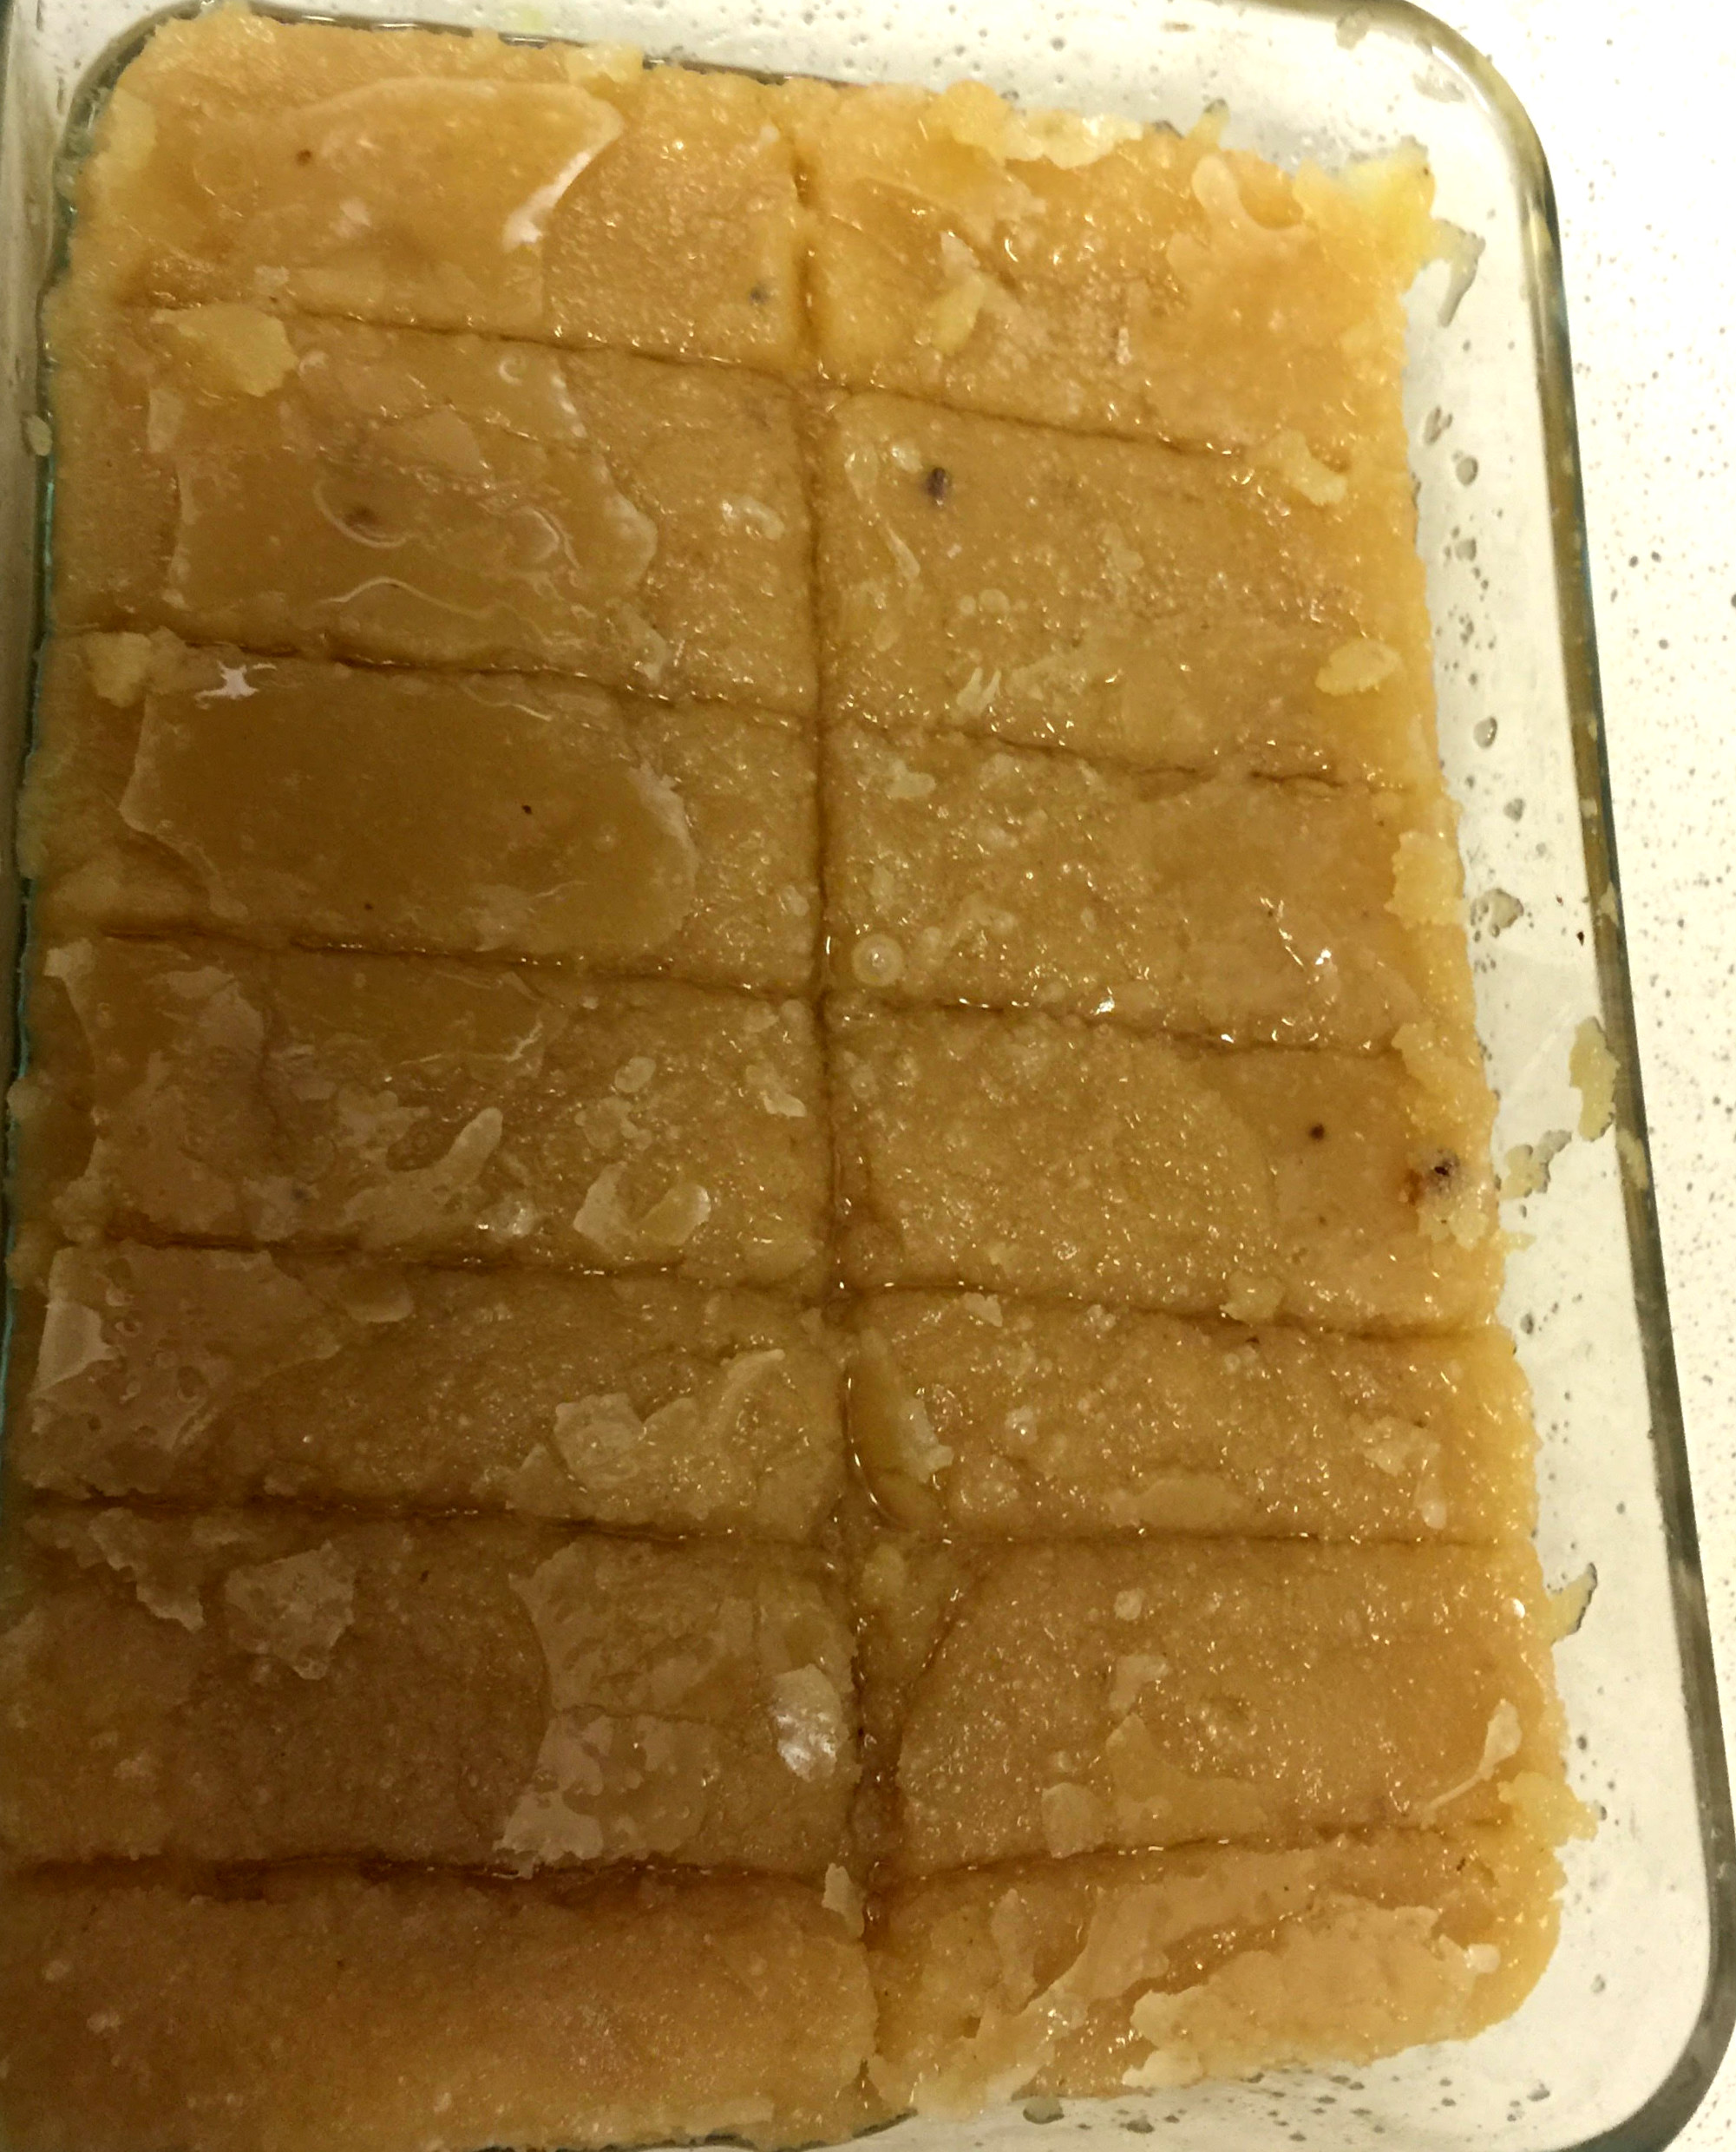 Cuts made for mysore pak